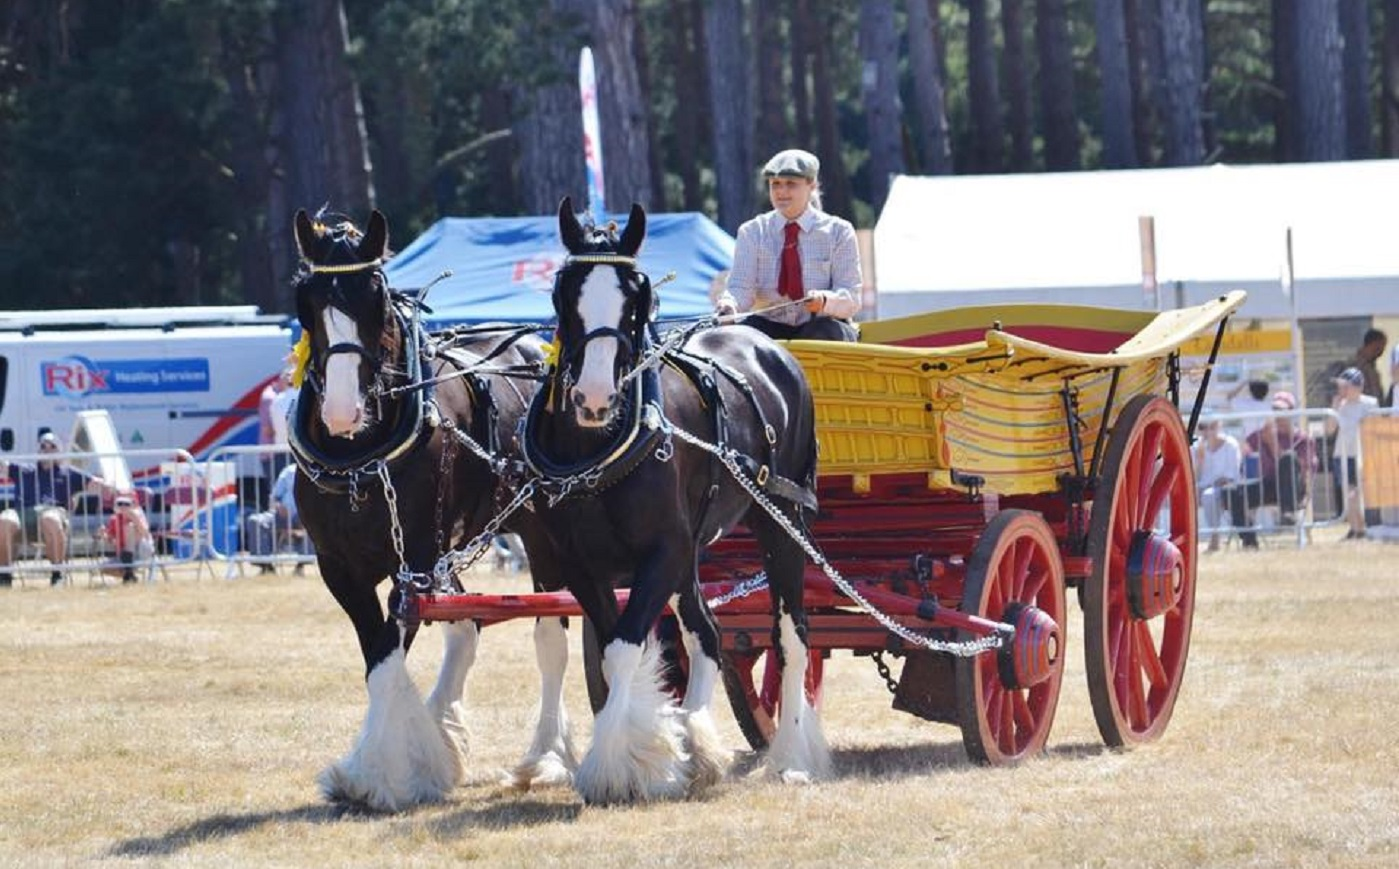 Sledmere shires and wolds wagon